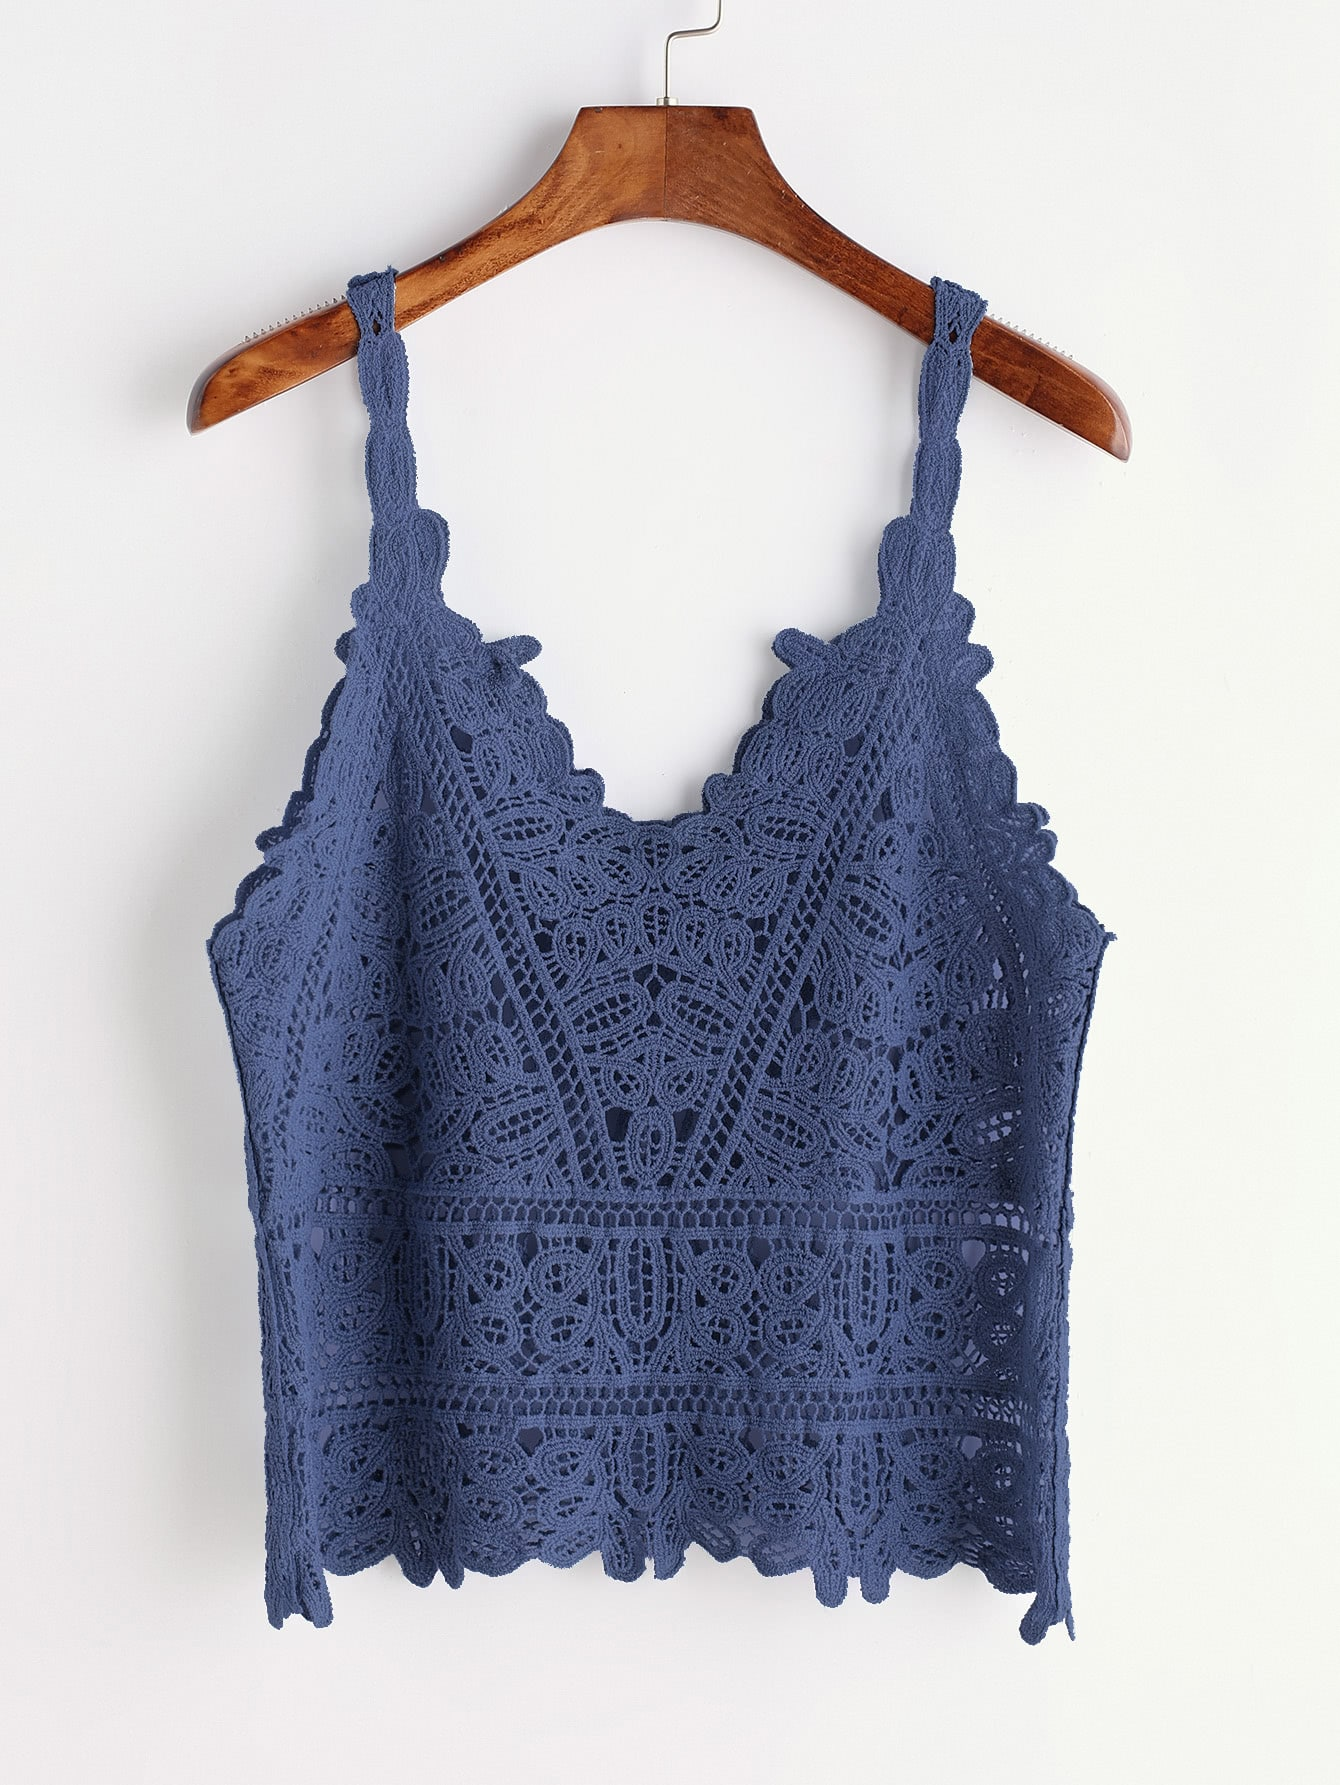 Crochet Lace Hollow Out Cami Top crochet lace hollow out cami top